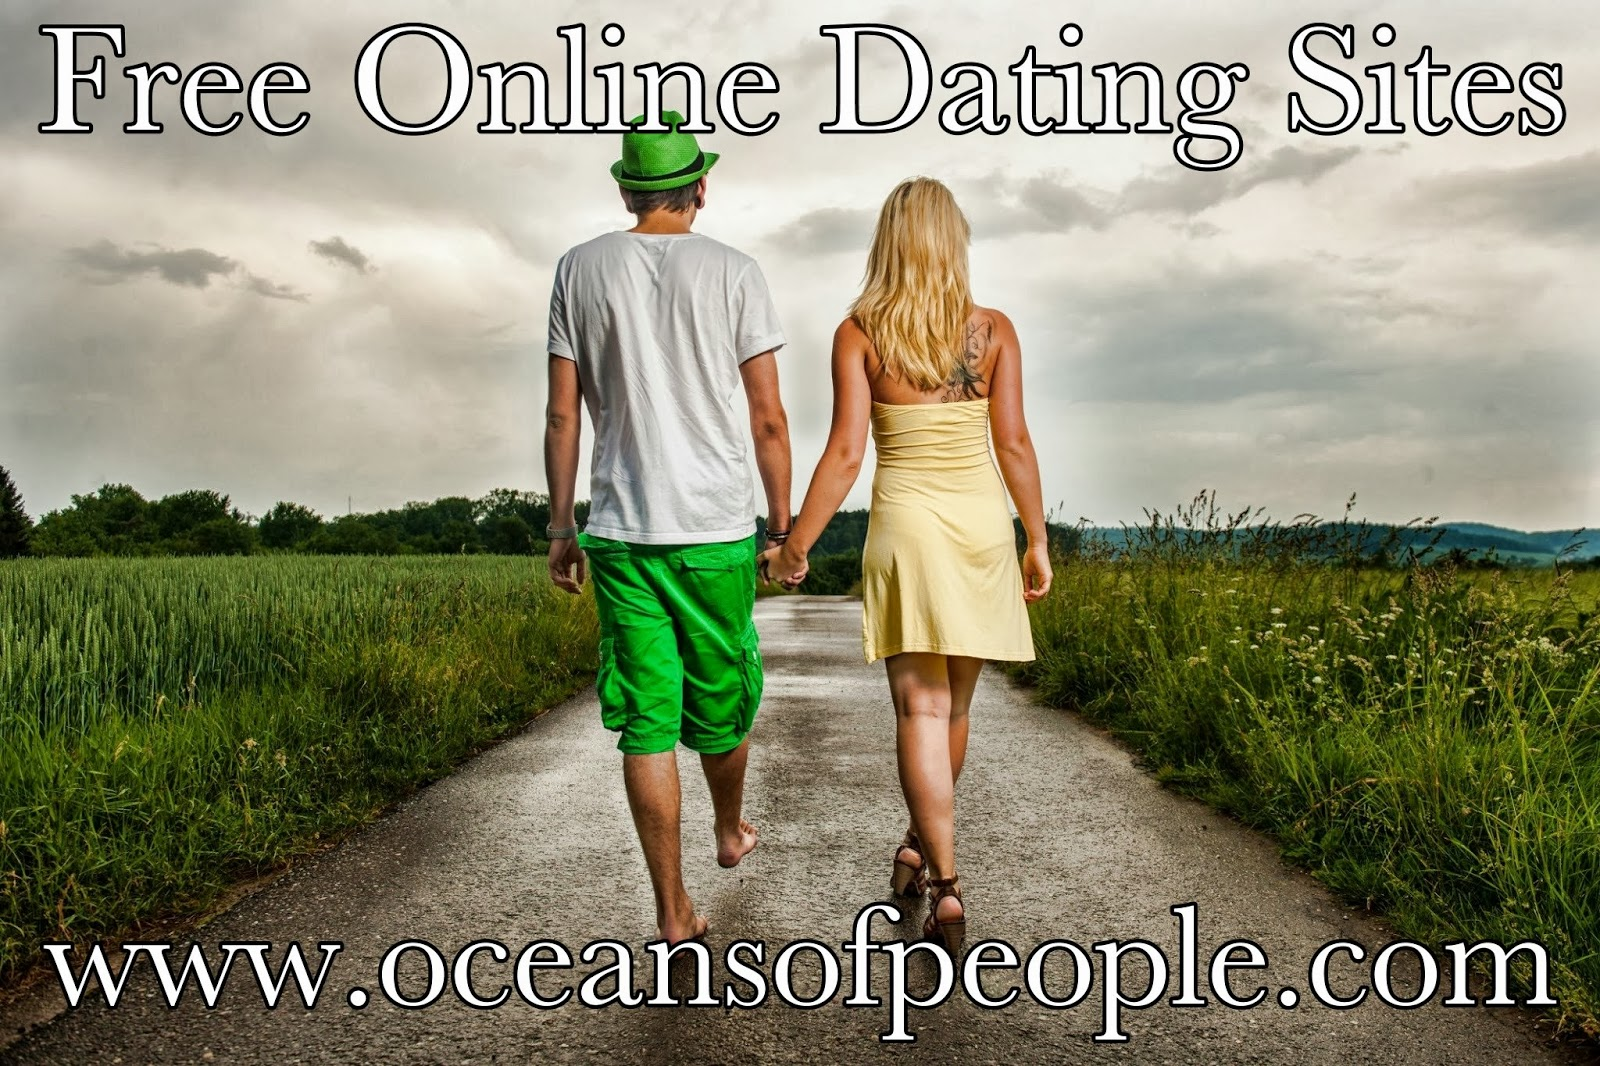 Online dating sites com